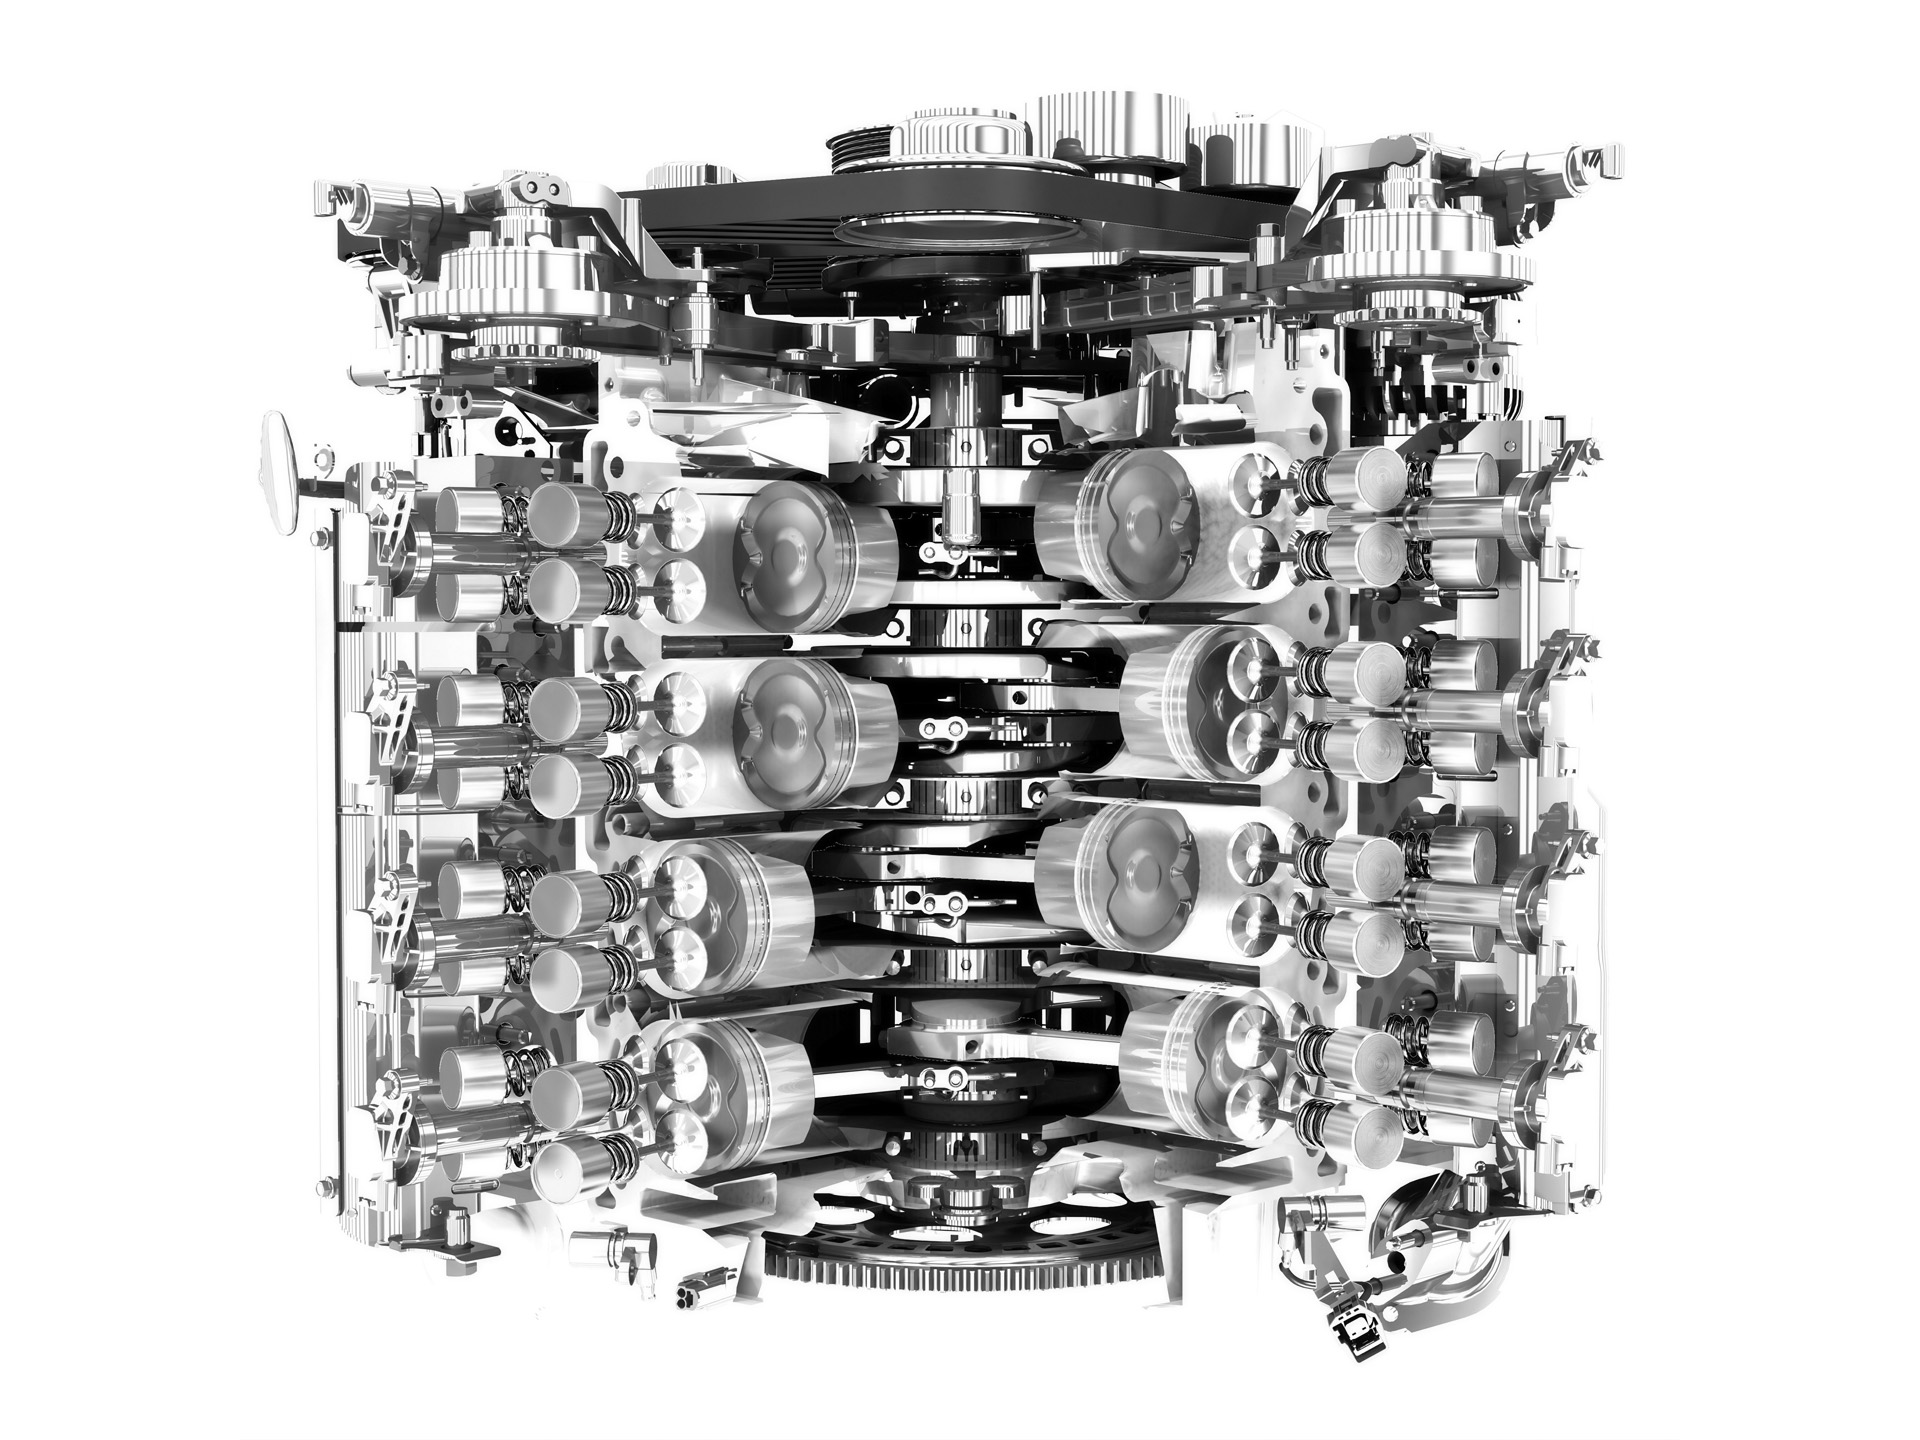 Sample P265d Engine